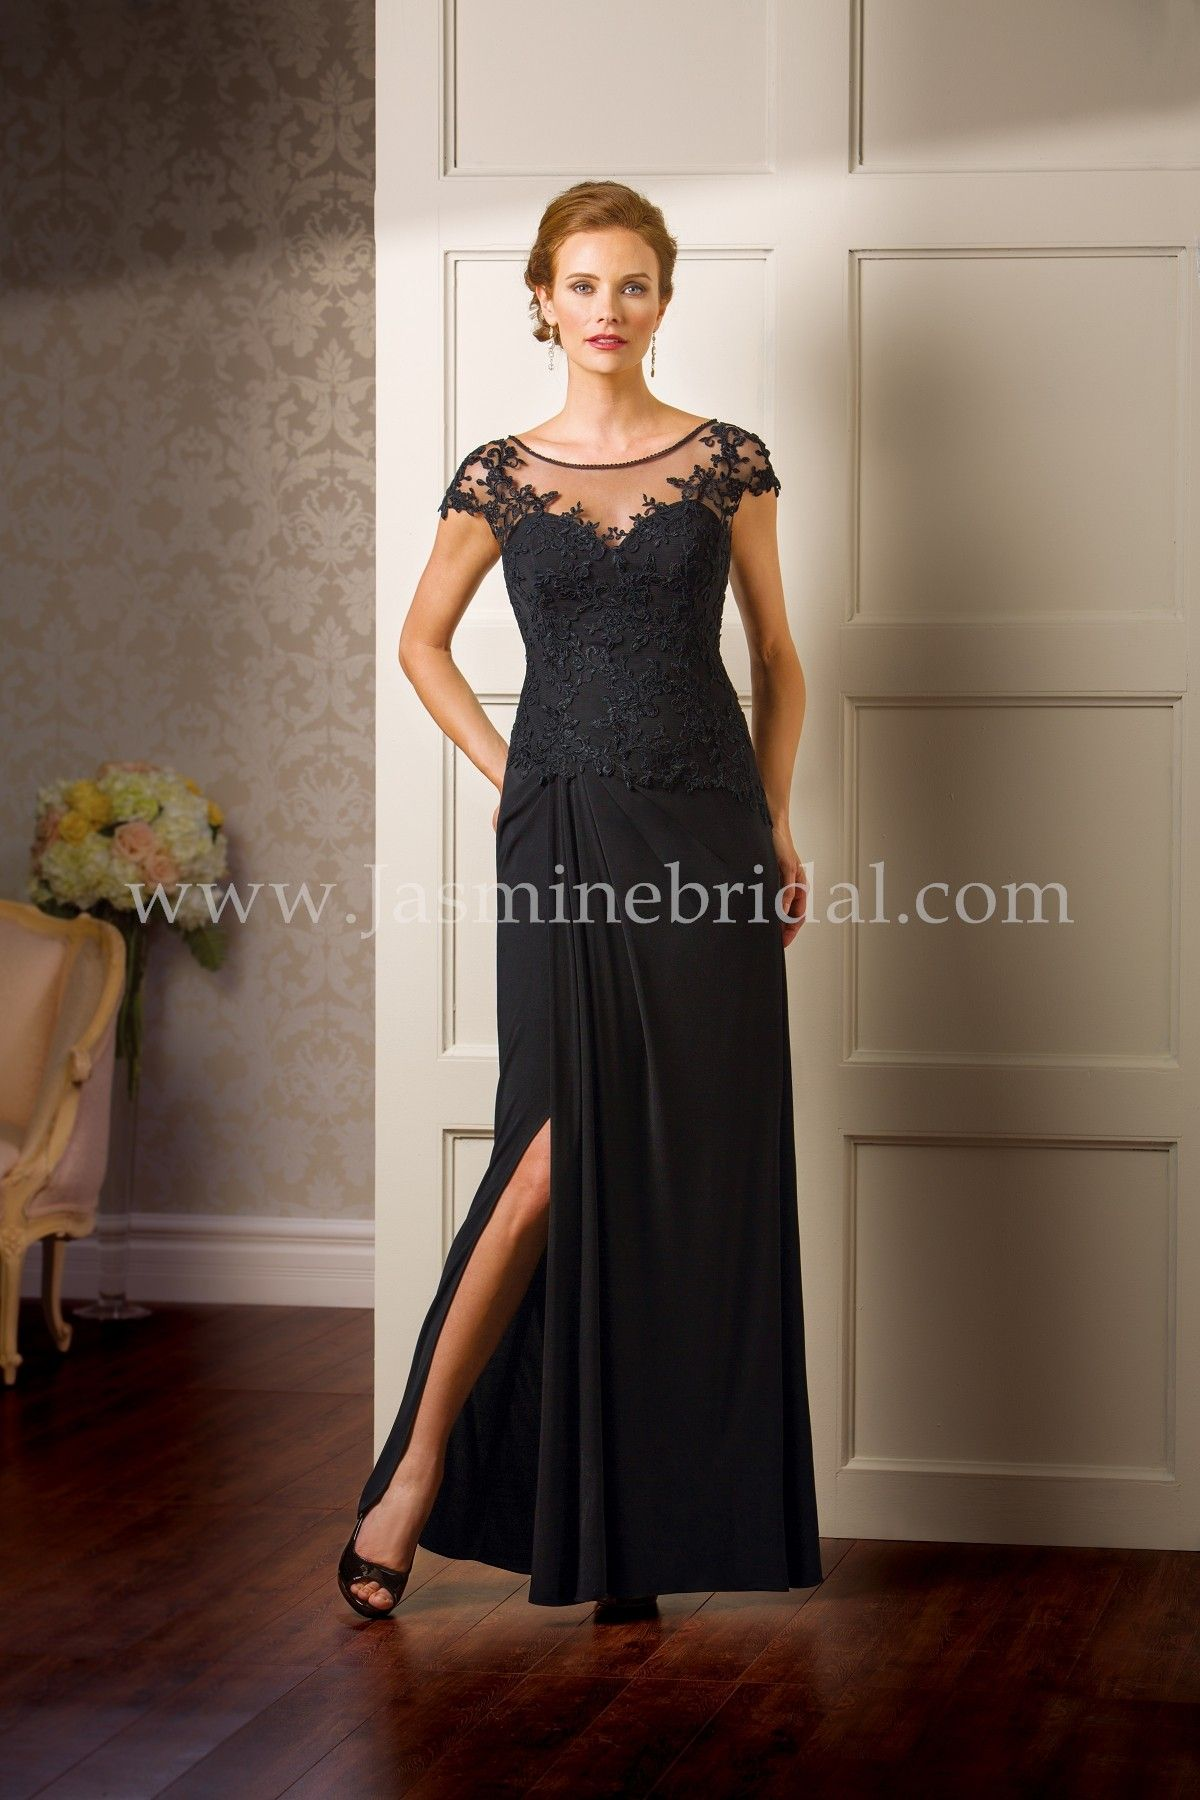 Jasmine Bridal Jade Couture Style K178065 In Black This Sheath Mother Of The Bride Dress With An Illusion Boat Neckline Is A Great Choice For Your